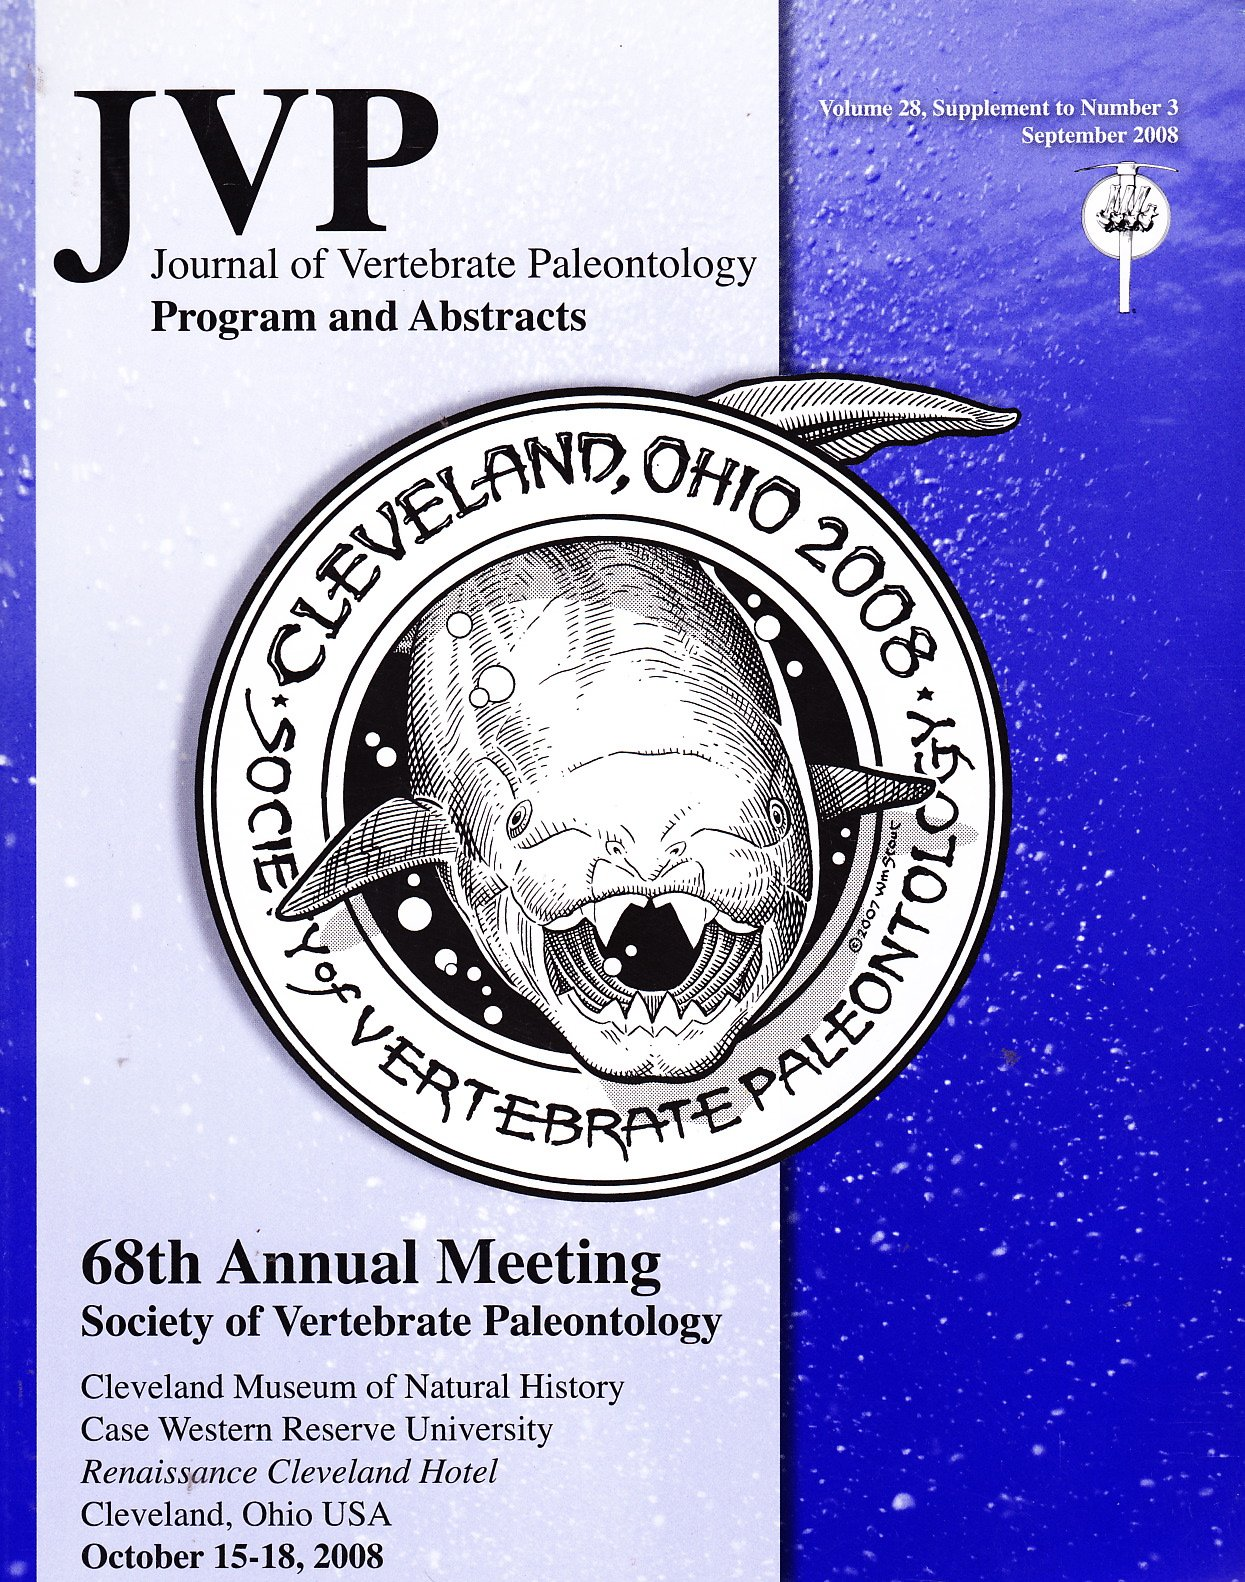 JVP: Journal of Vertebrate Paleontology Program and Abstracts (Volume 28, Supplement to Number 3, September, 68th Annual Meeting, Cleveland, Ohio, October 15-18, 2008)